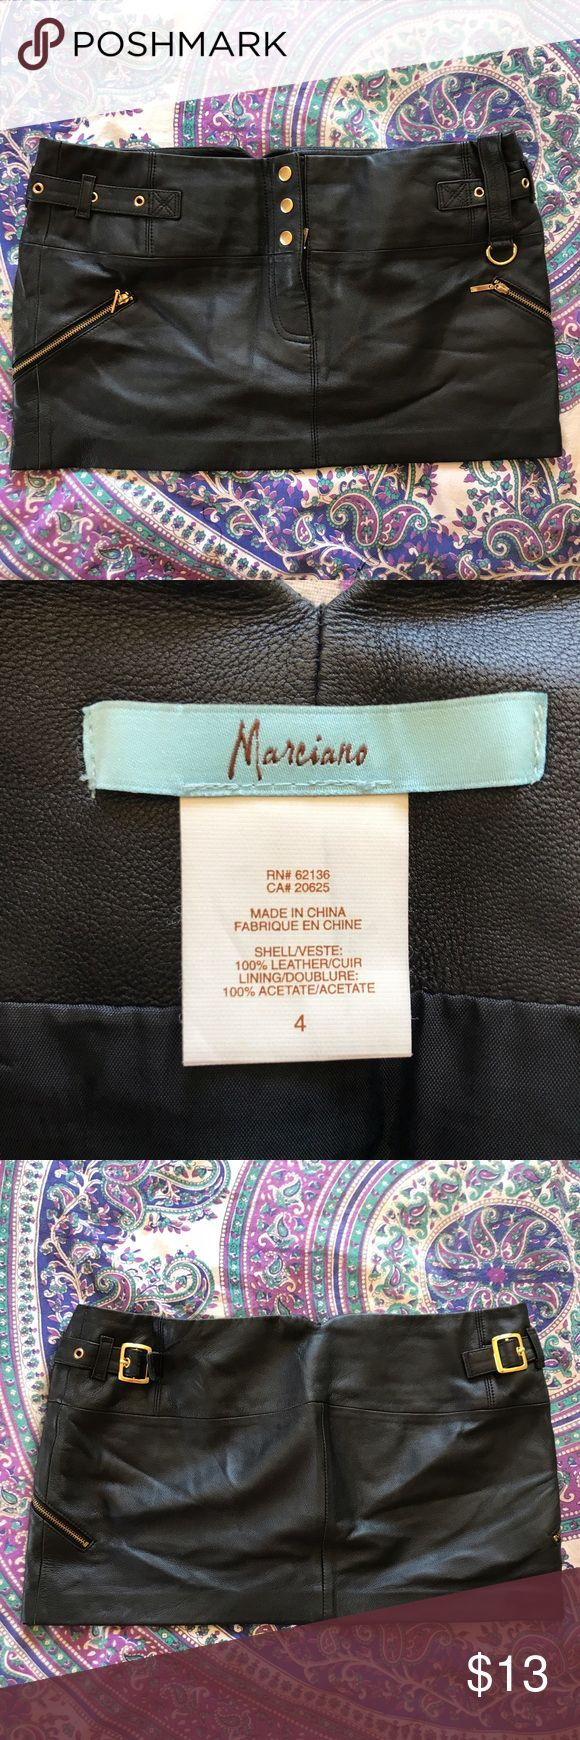 """Guess Marciano - Genuine Leather Mini Skirt - 4 Super sexy genuine leather hardware mini skirt in size 4. I've never worn it I got it as a present from an ex and it's been sitting in my closet ever since. 10.5"""" length. Marciano Skirts Mini"""